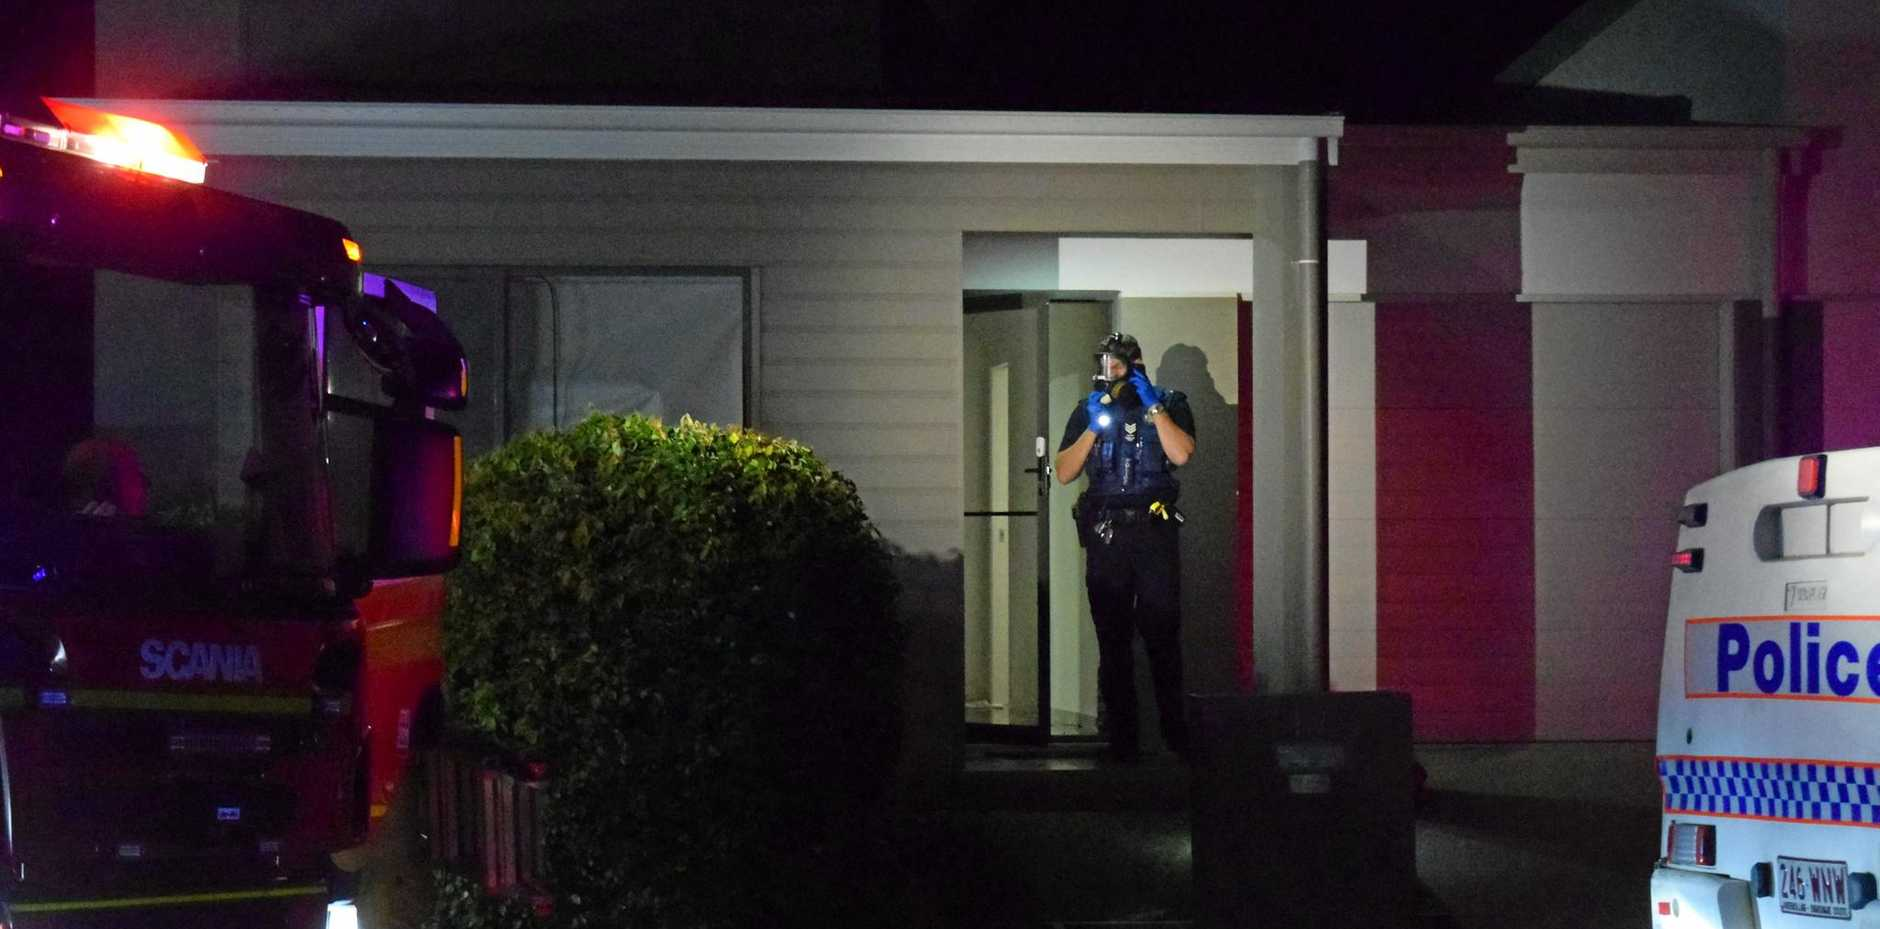 MASKED UP: A police officer in a gas mask prepares to enter the house.